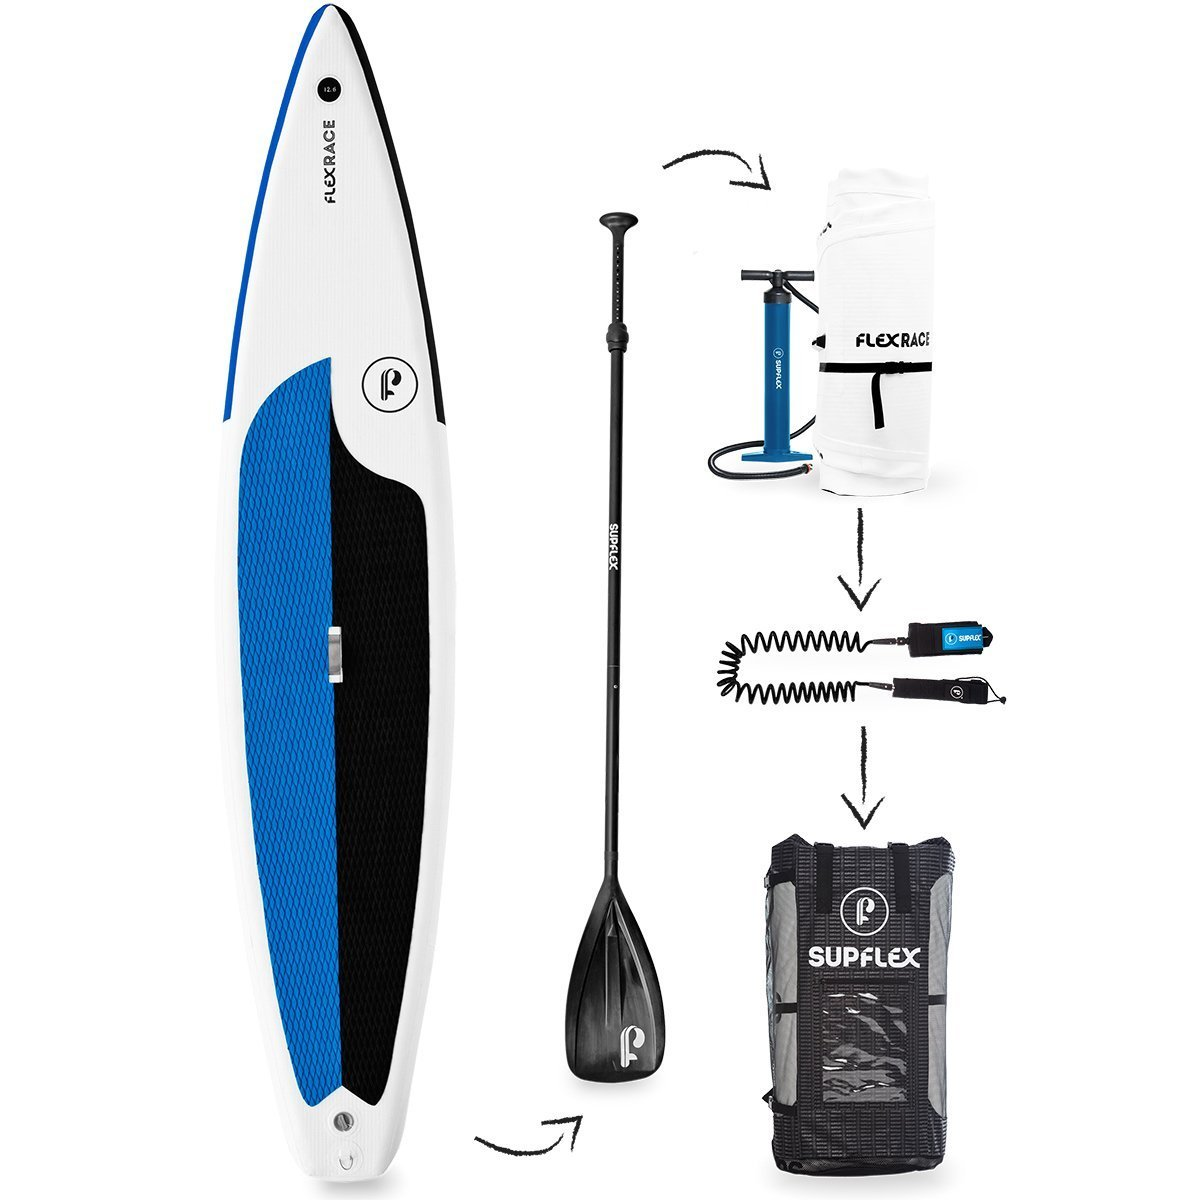 Supflex FLEXRACE Inflatable SUP Package